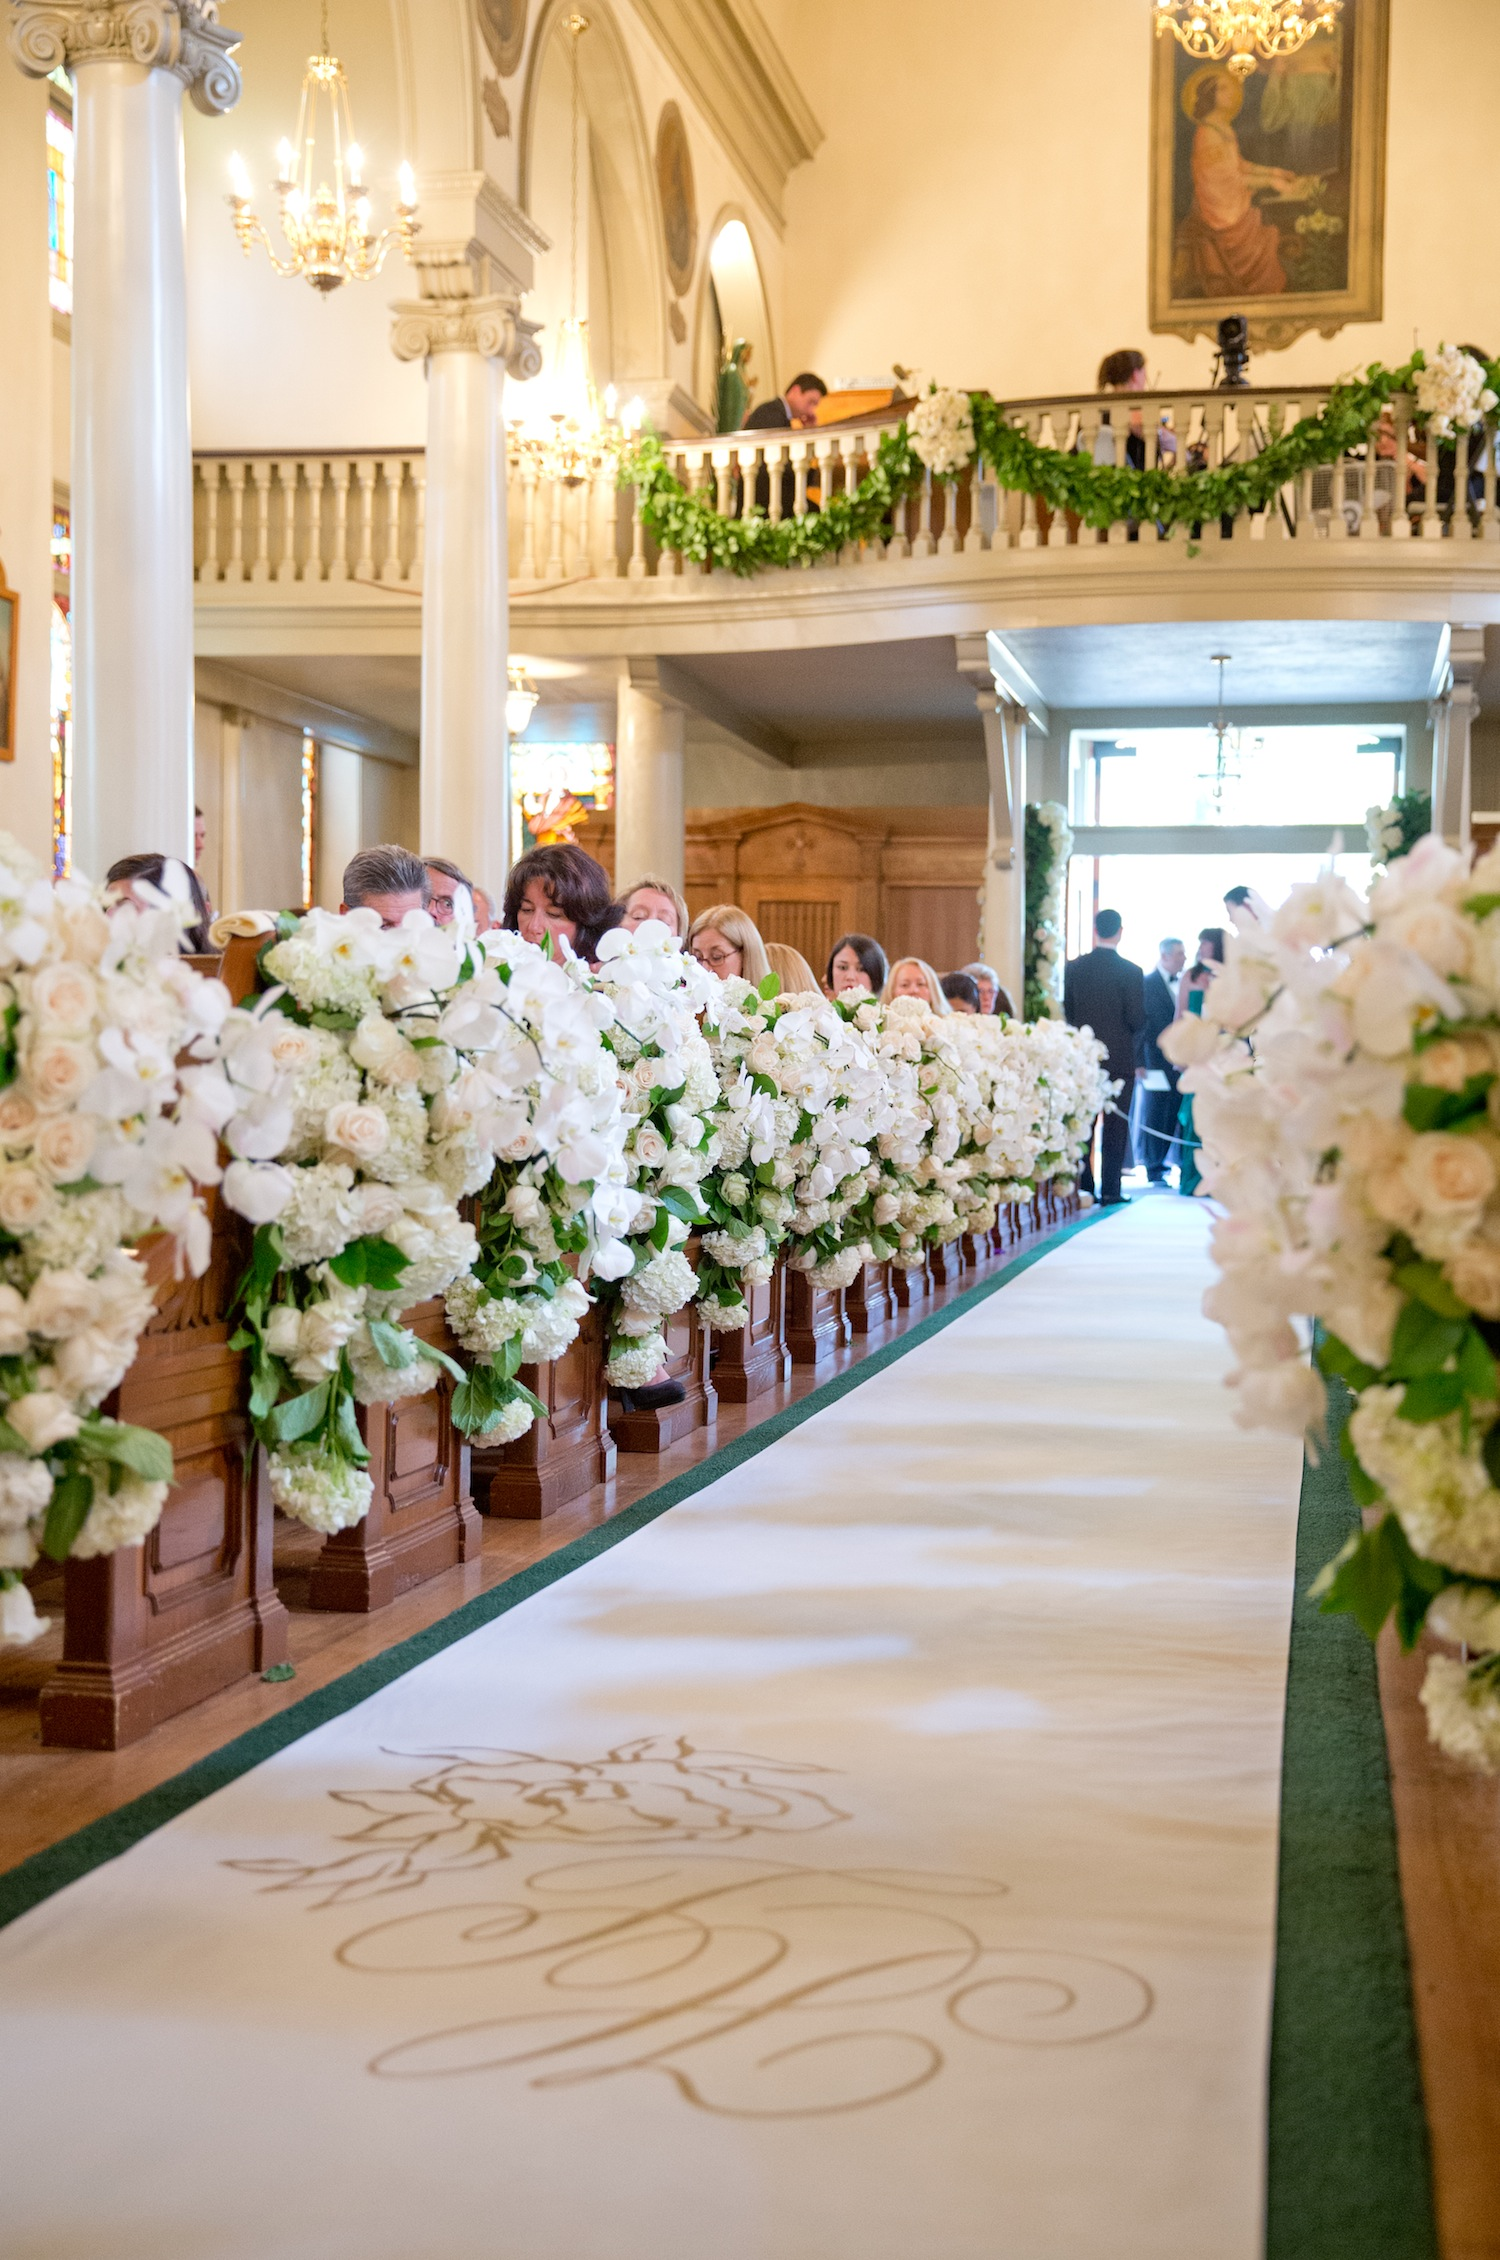 Wedding ceremony ideas 13 dcor ideas for a church wedding inside custom aisle runner and flowers at church wedding junglespirit Choice Image